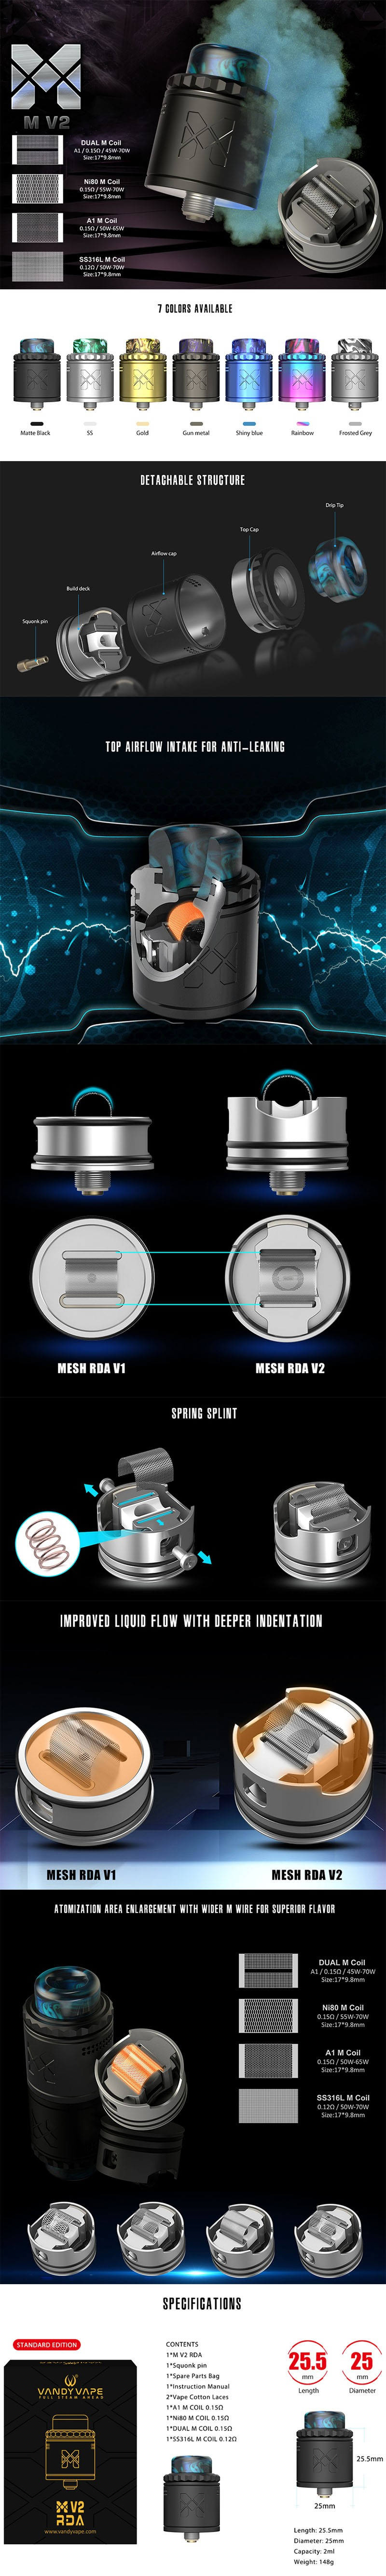 Vandy Vape Mesh V2 RDA Rebuildable Dripping Atomizer